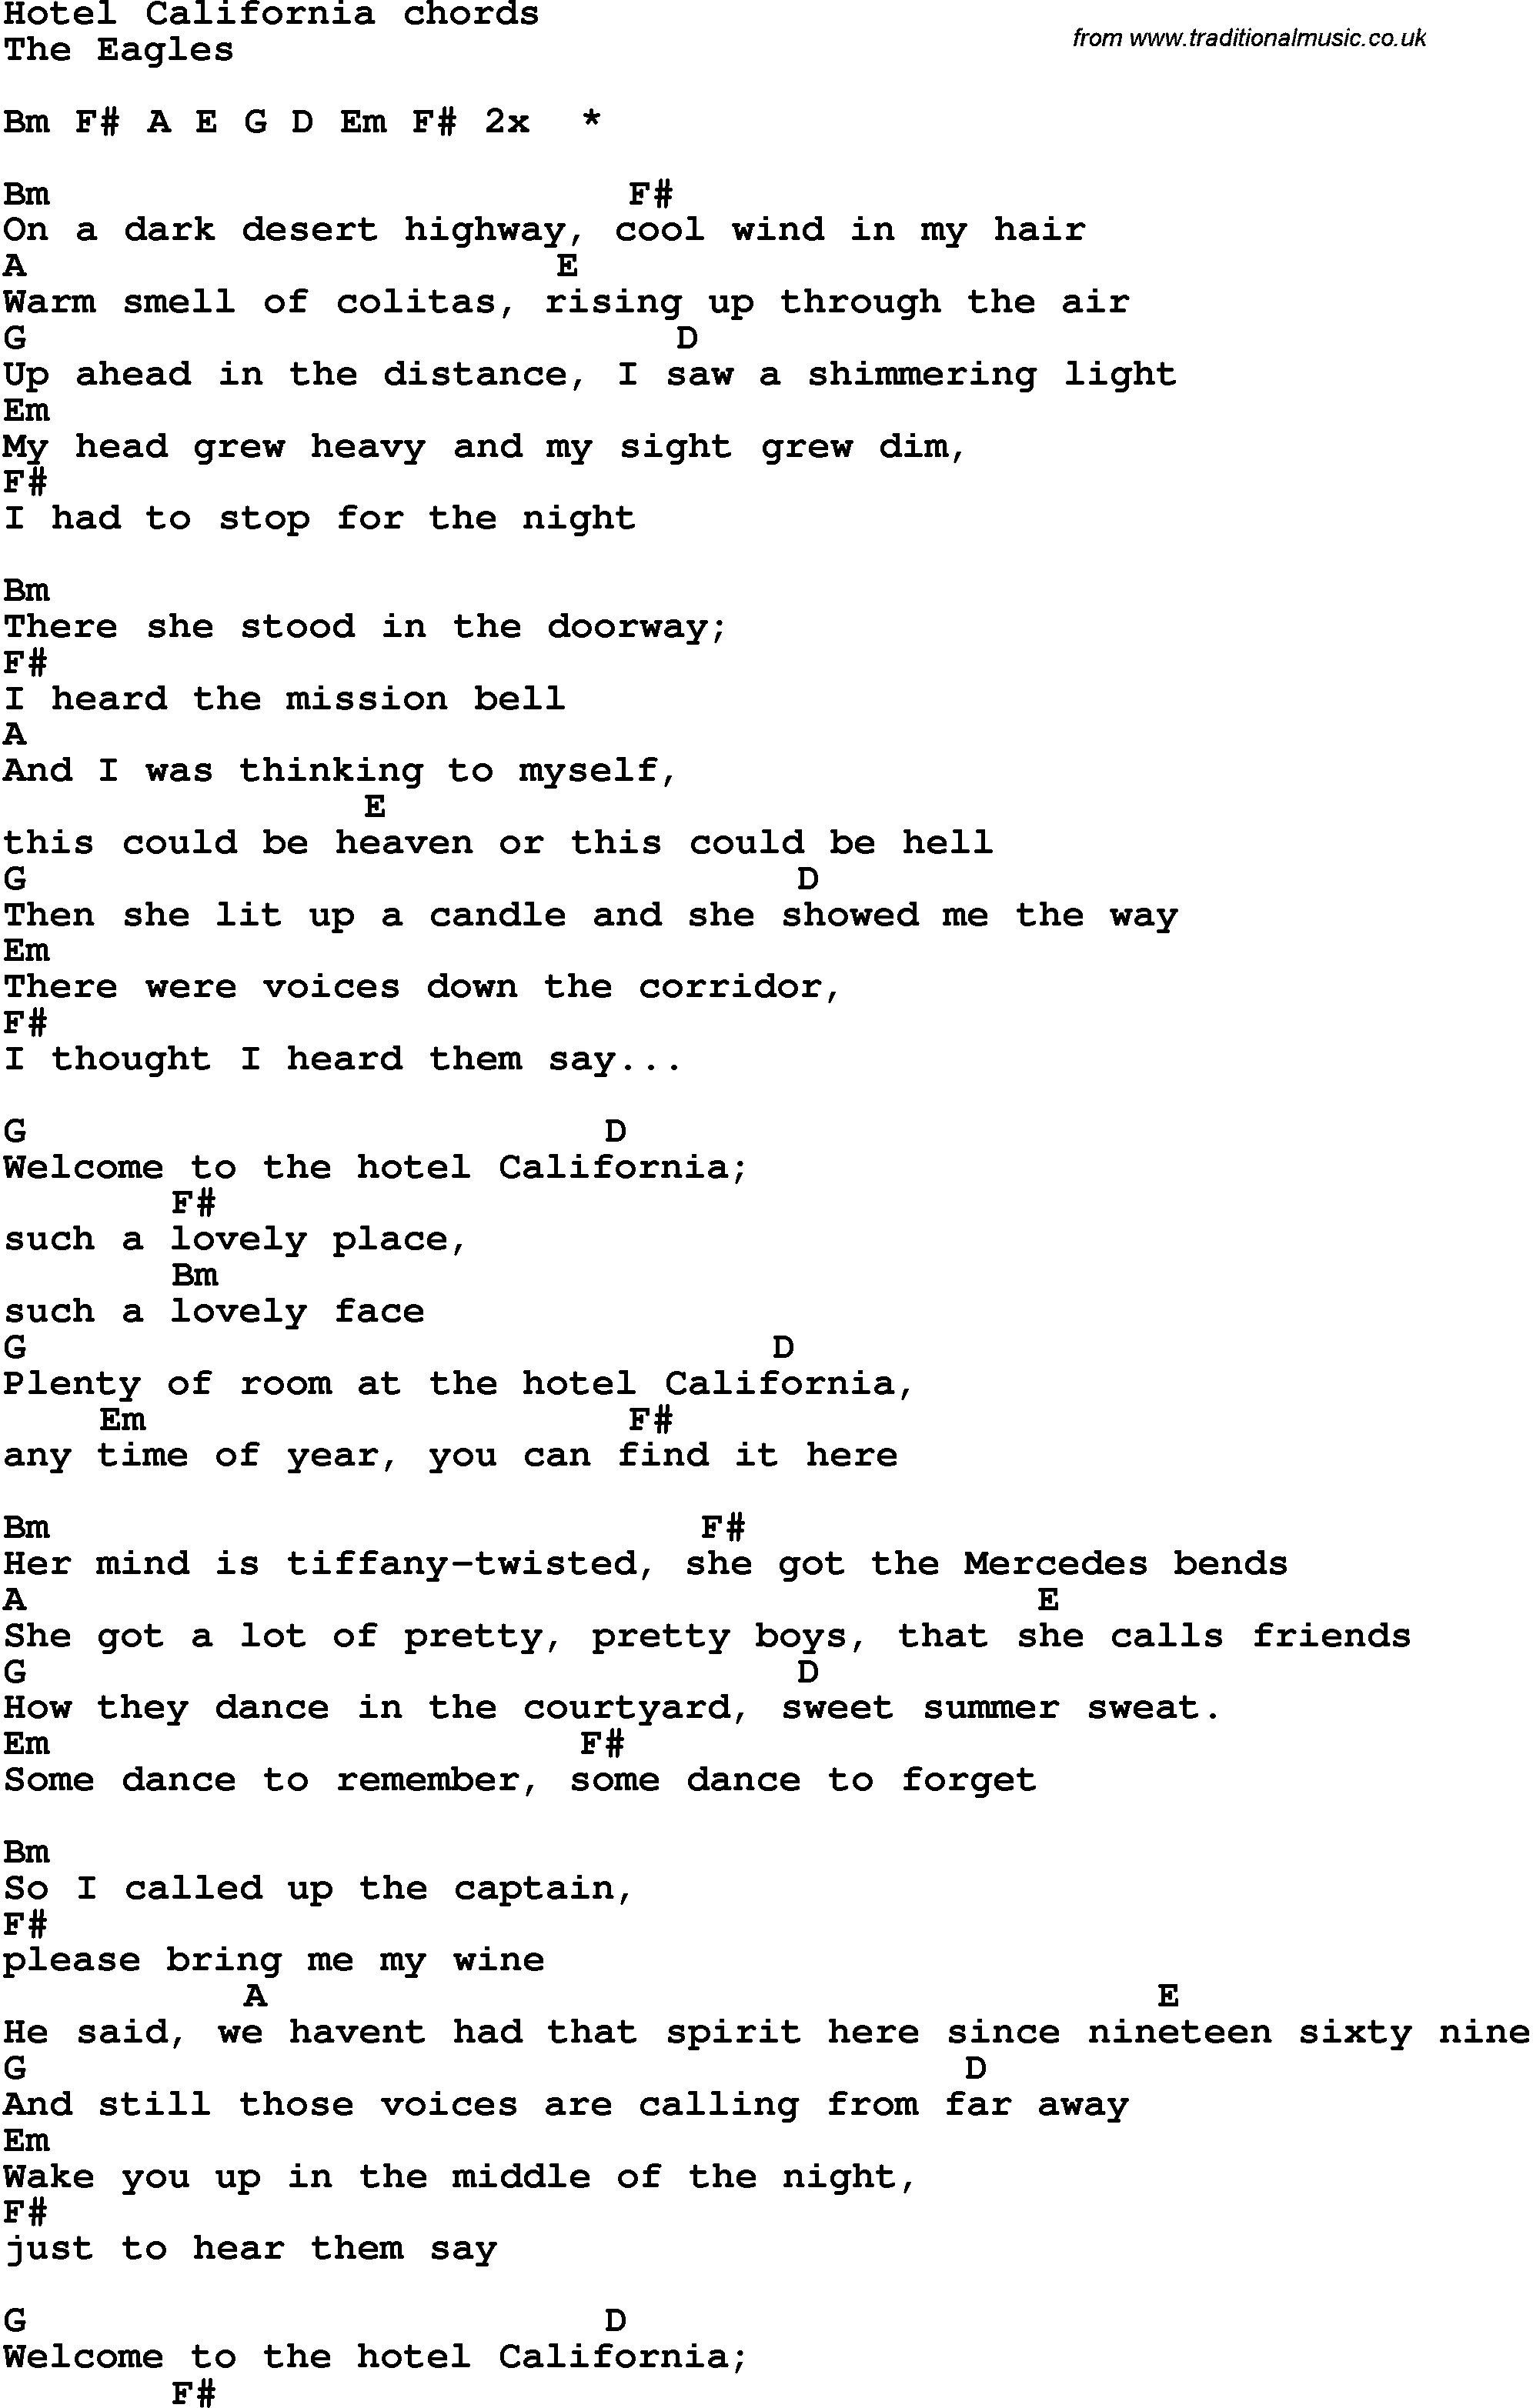 Song lyrics with guitar chords for hotel california song lyrics with guitar chords for hotel california hexwebz Image collections